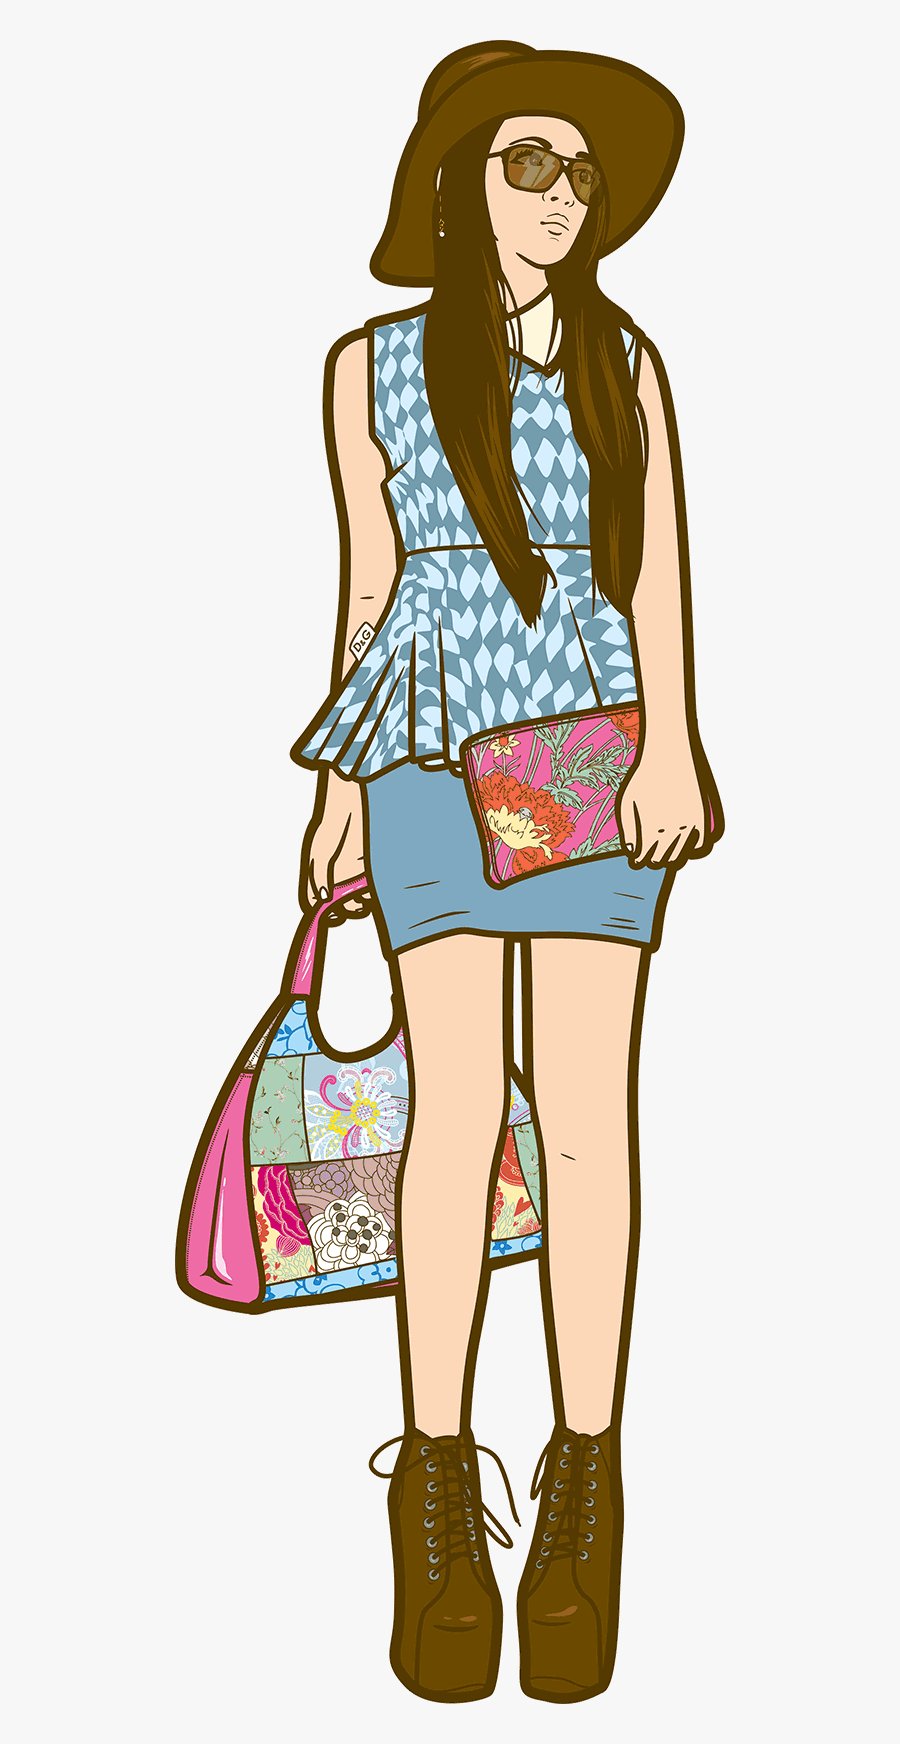 Character Illustration Fashionista - Character Illustration Png, Transparent Clipart